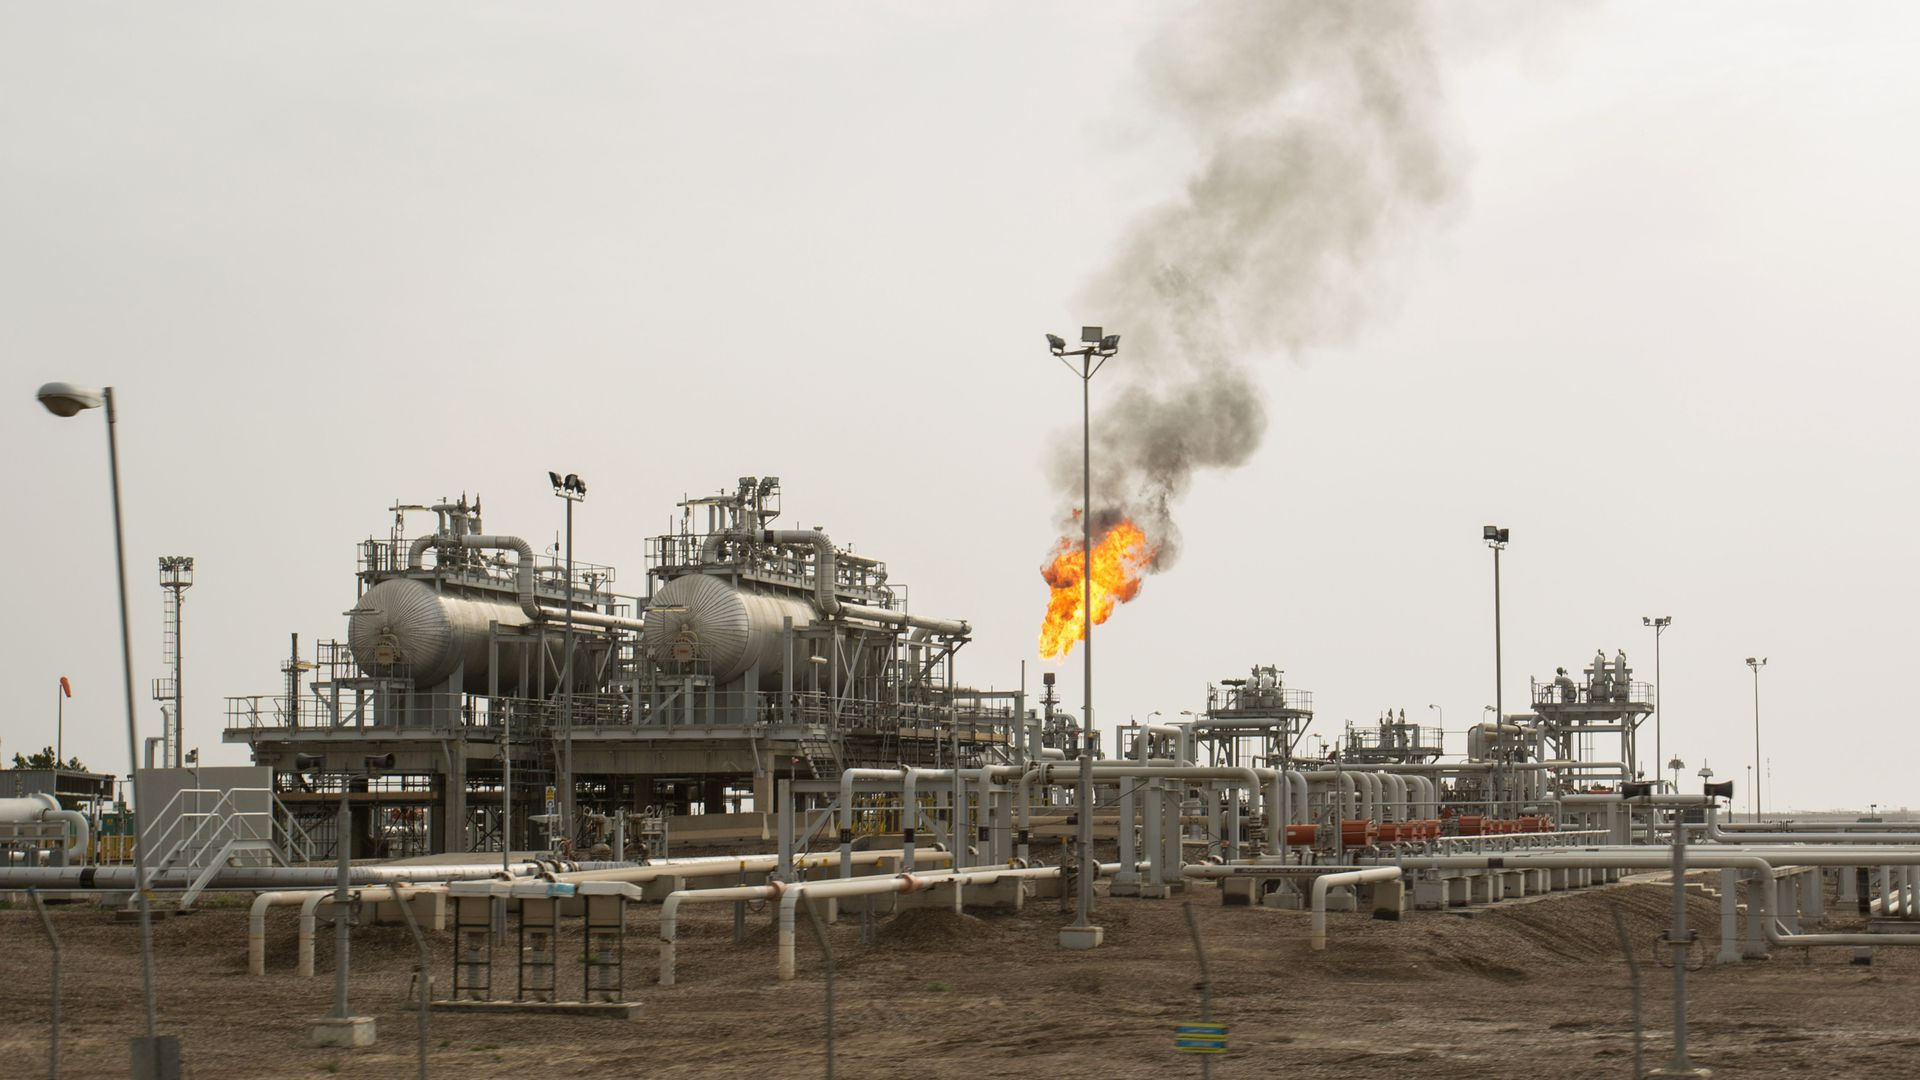 Iraq is on track to be the world's 4th-largest oil contributor by 2030